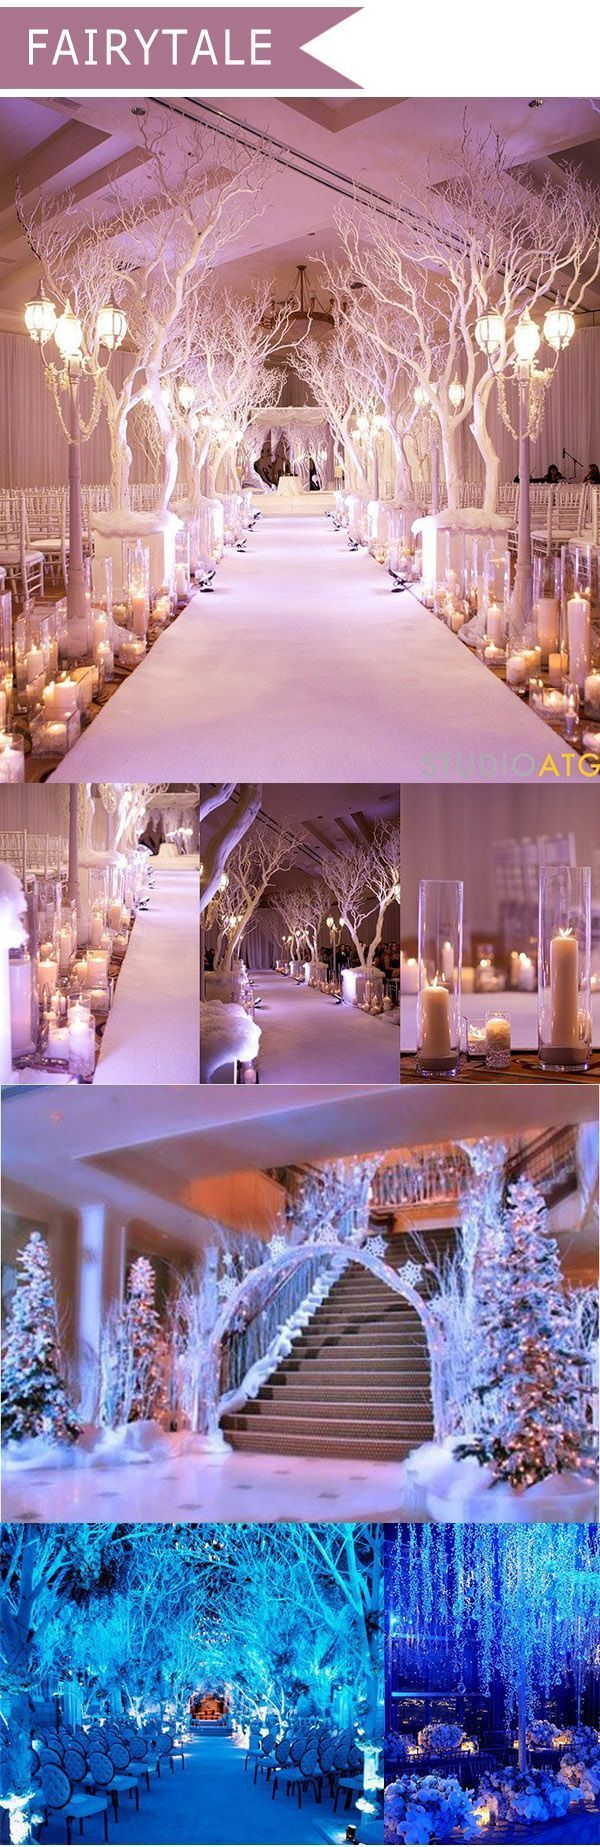 fairytale themed wedding decoration ideas for 2016 trends